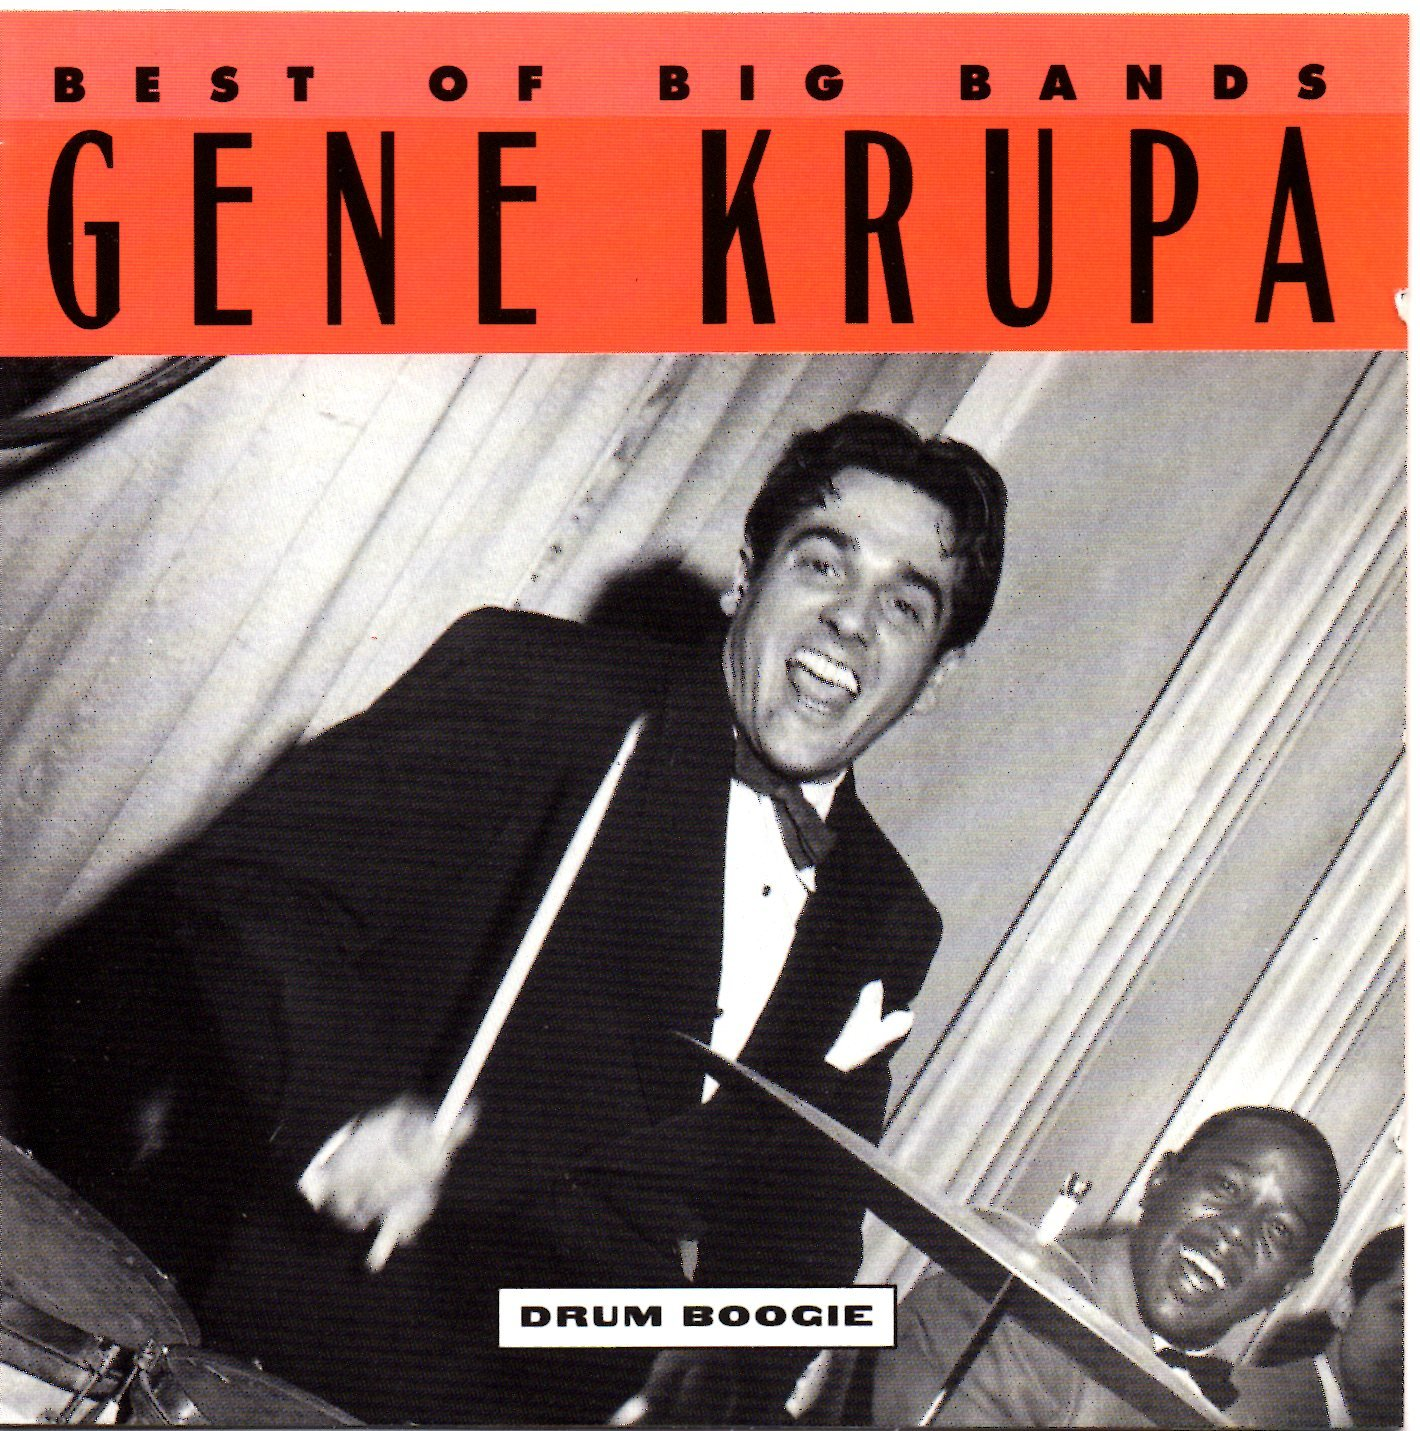 Best of Big Bands: Gene Krupa Drum Boogie by Columbia